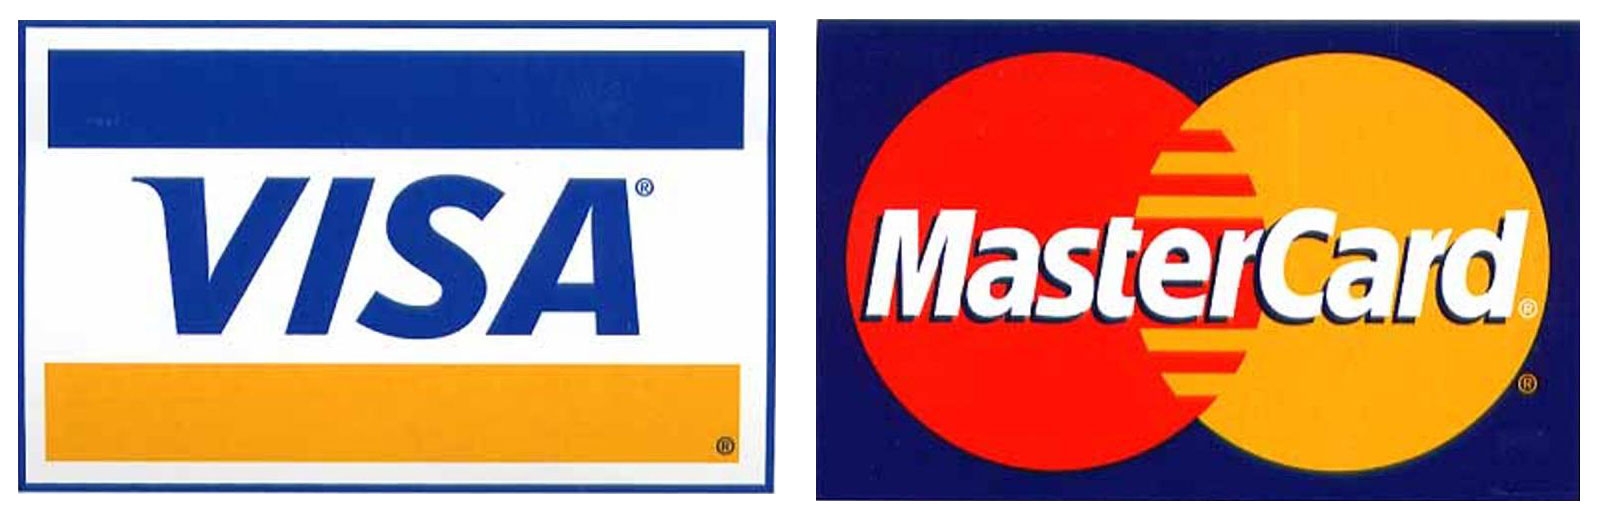 MasterCard credit cards and Visa If you apply for both